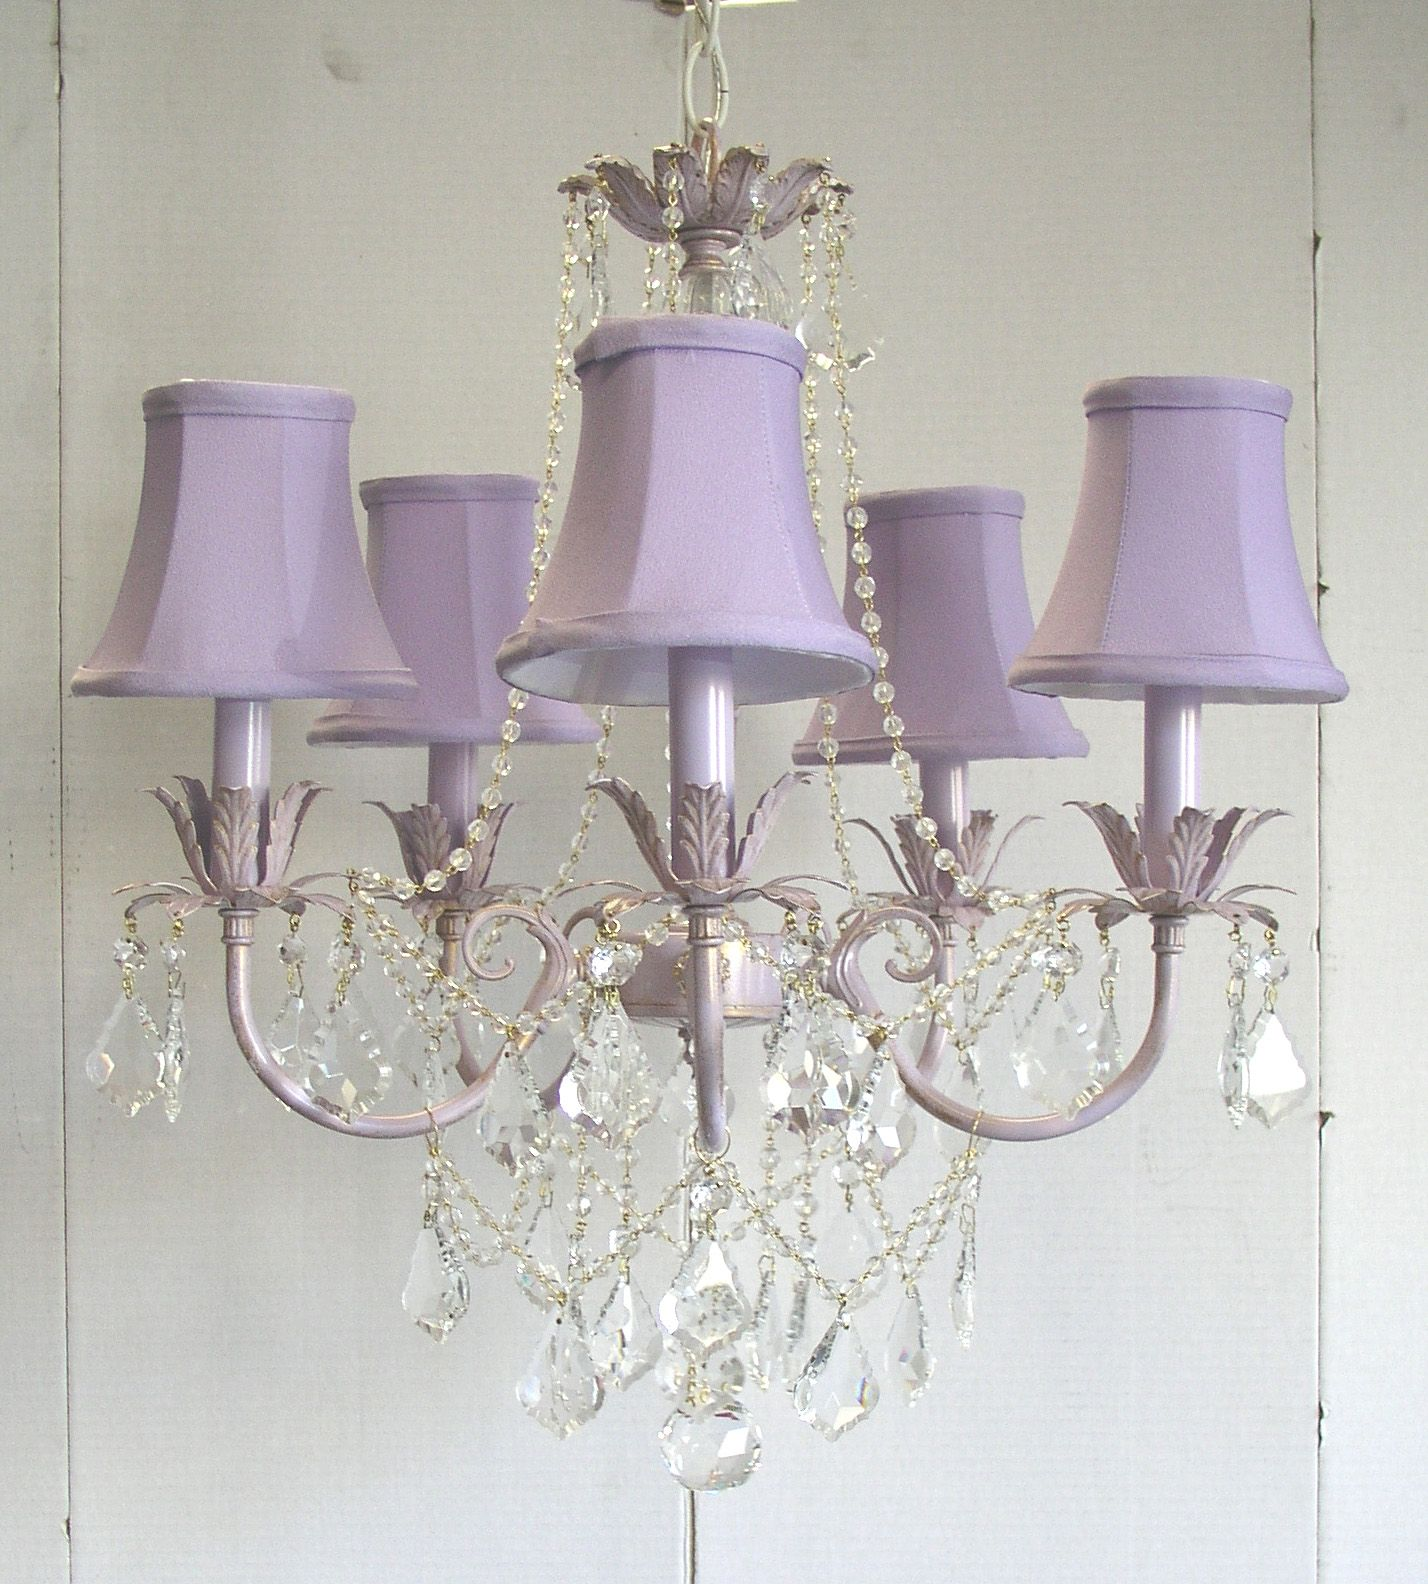 Nursery Chandeliers Chandeliers Design – Chandeliers for Baby Room